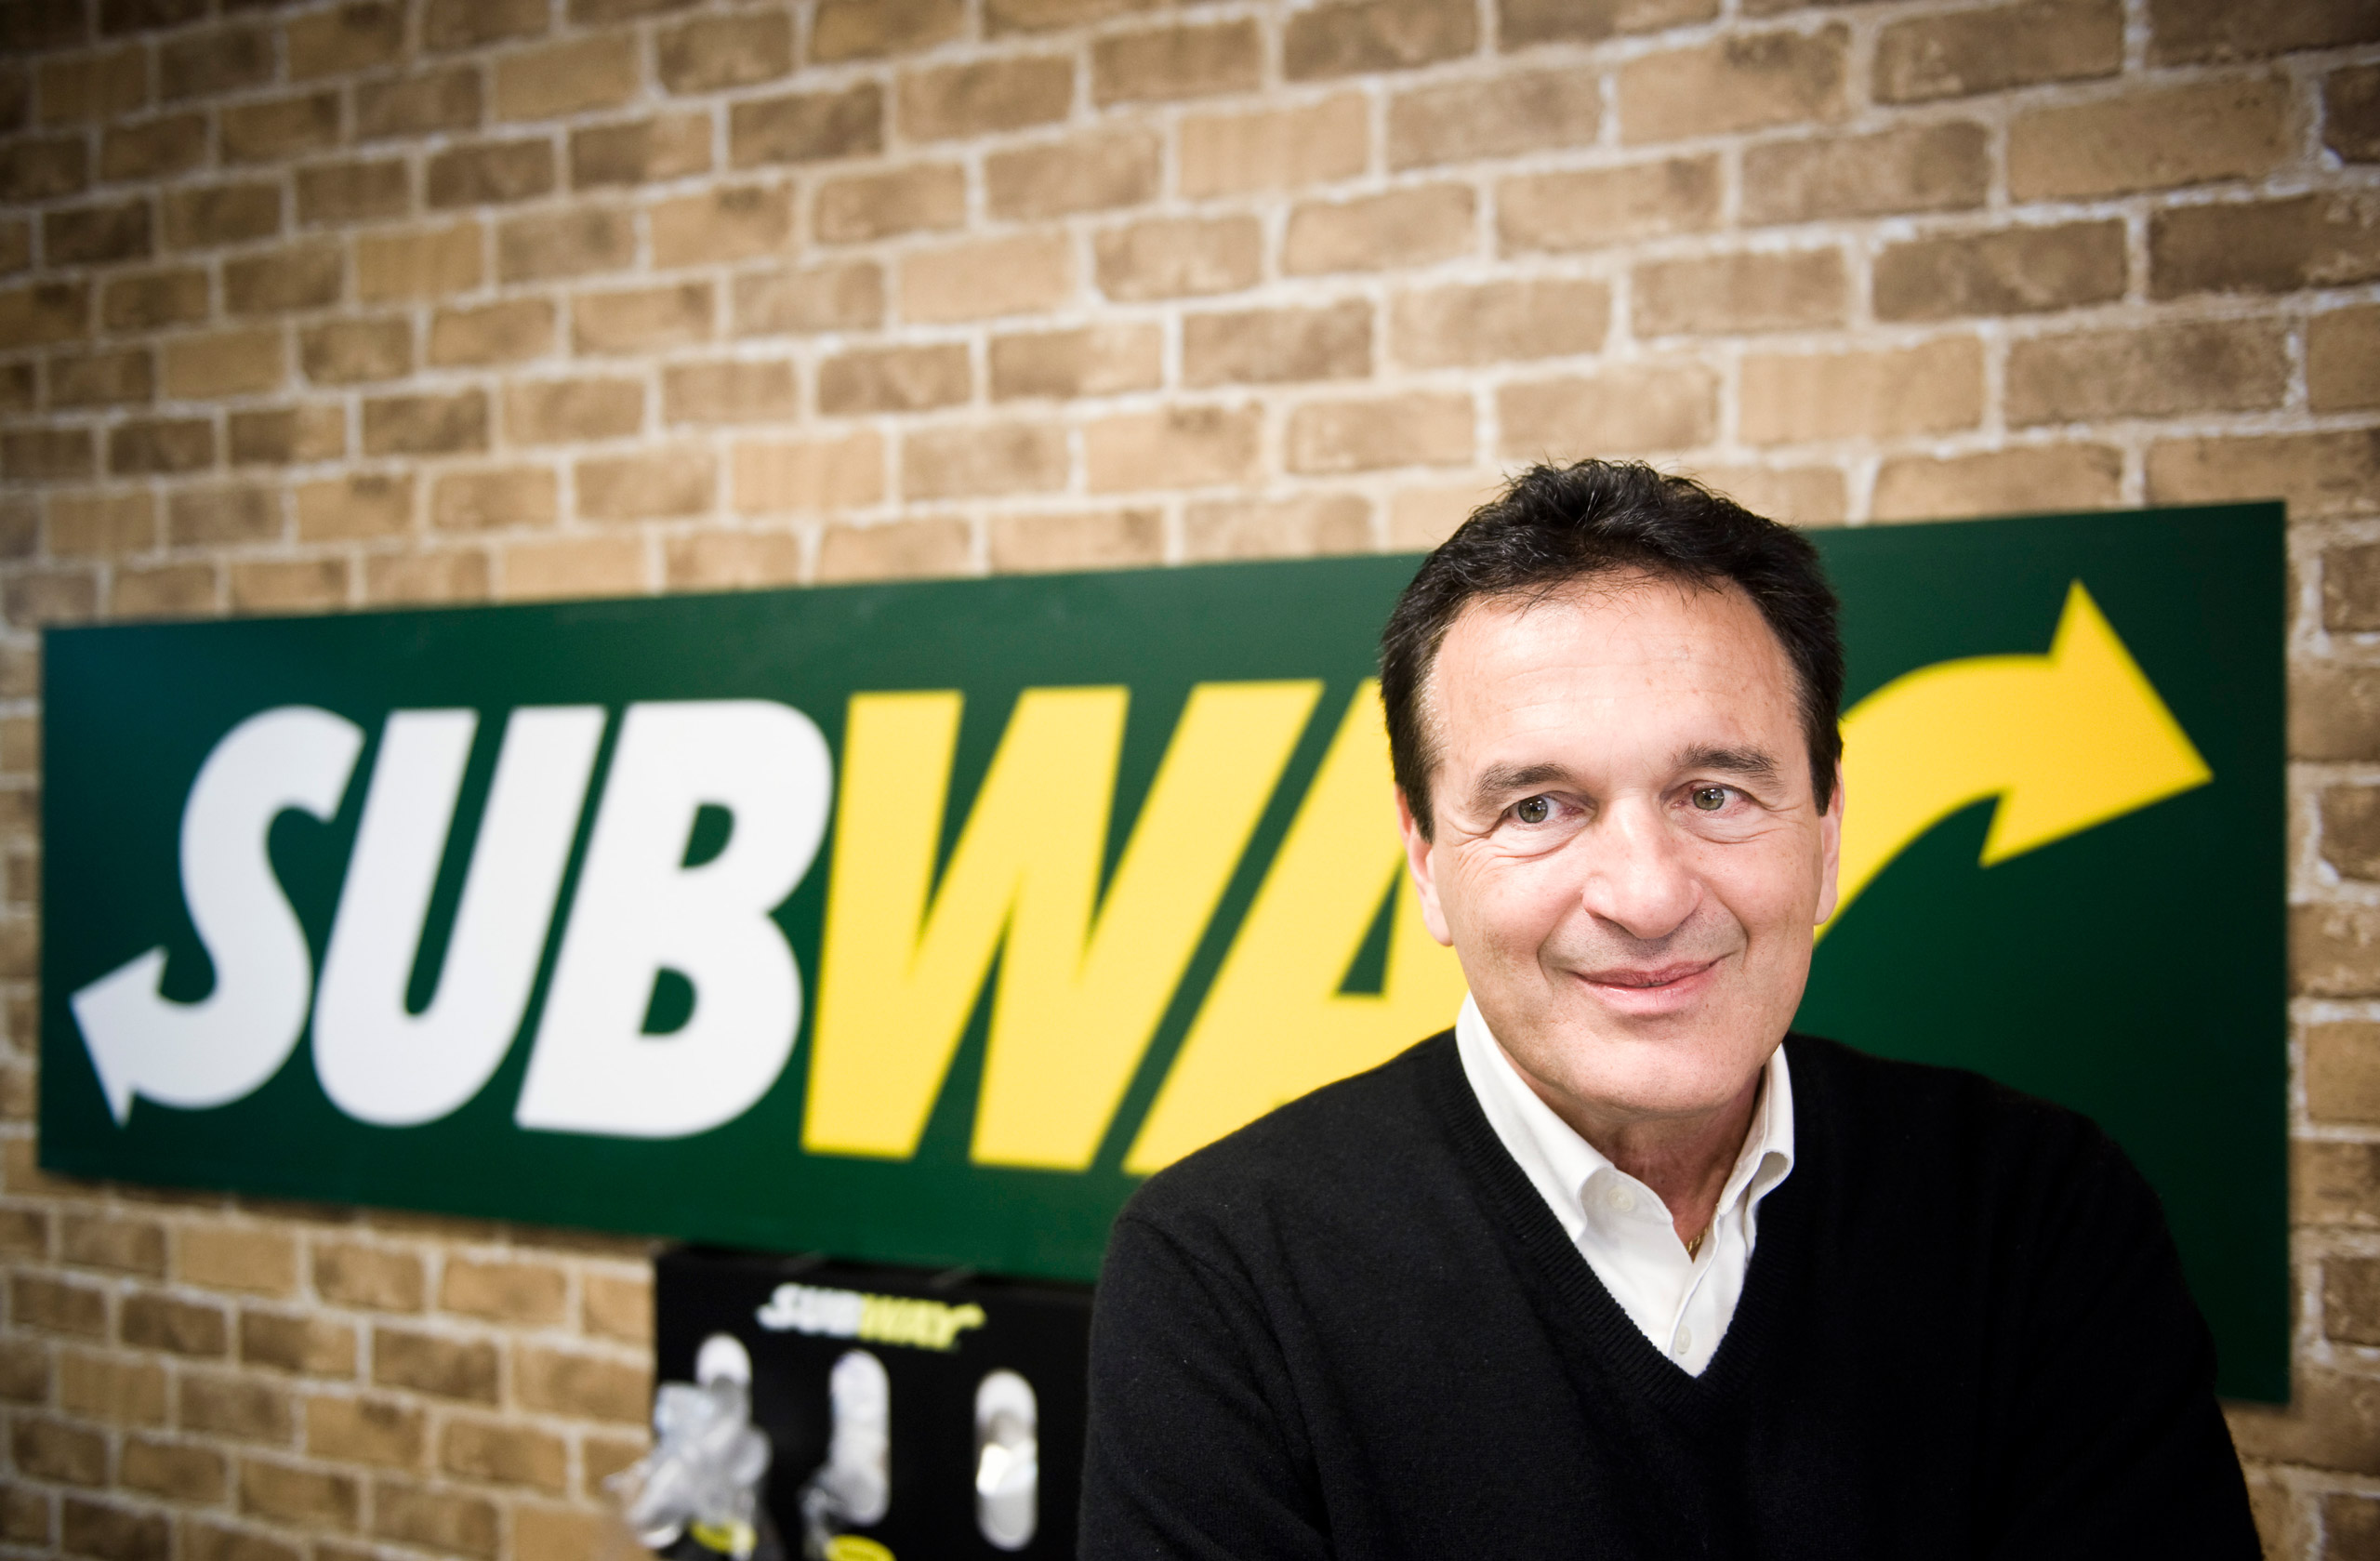 Fred DeLuca, CEO and co-founder of sandwich maker Subway, in a Subway restaurant at  Solna Centrum  in Stockholm on March 10, 2011.